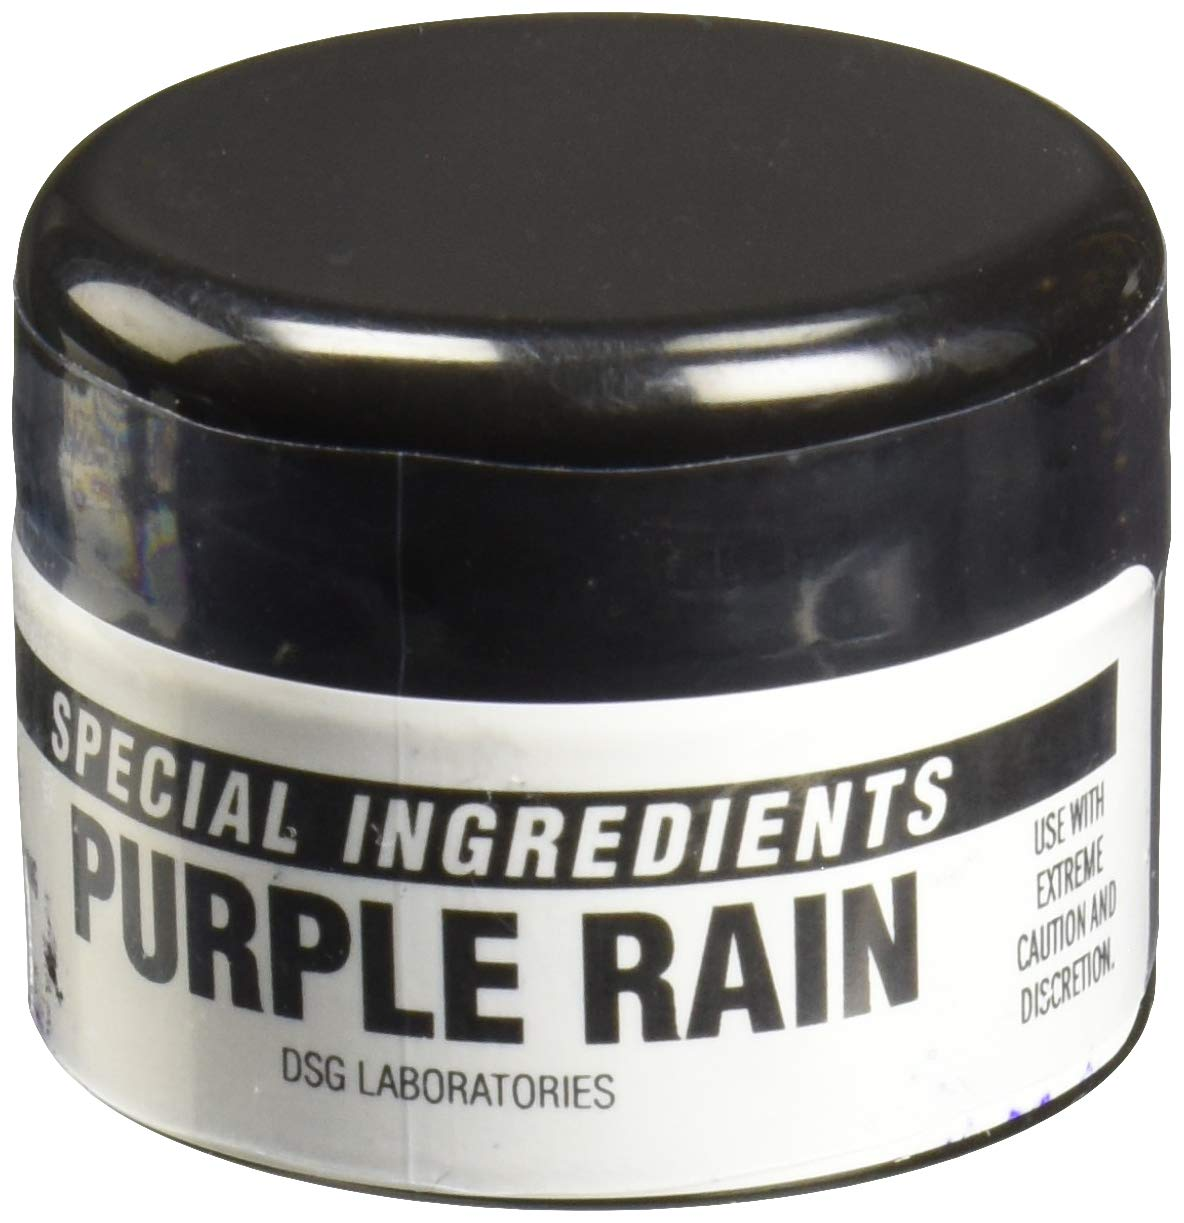 Shomer Tec Special Ingredients Purple Rain Powder